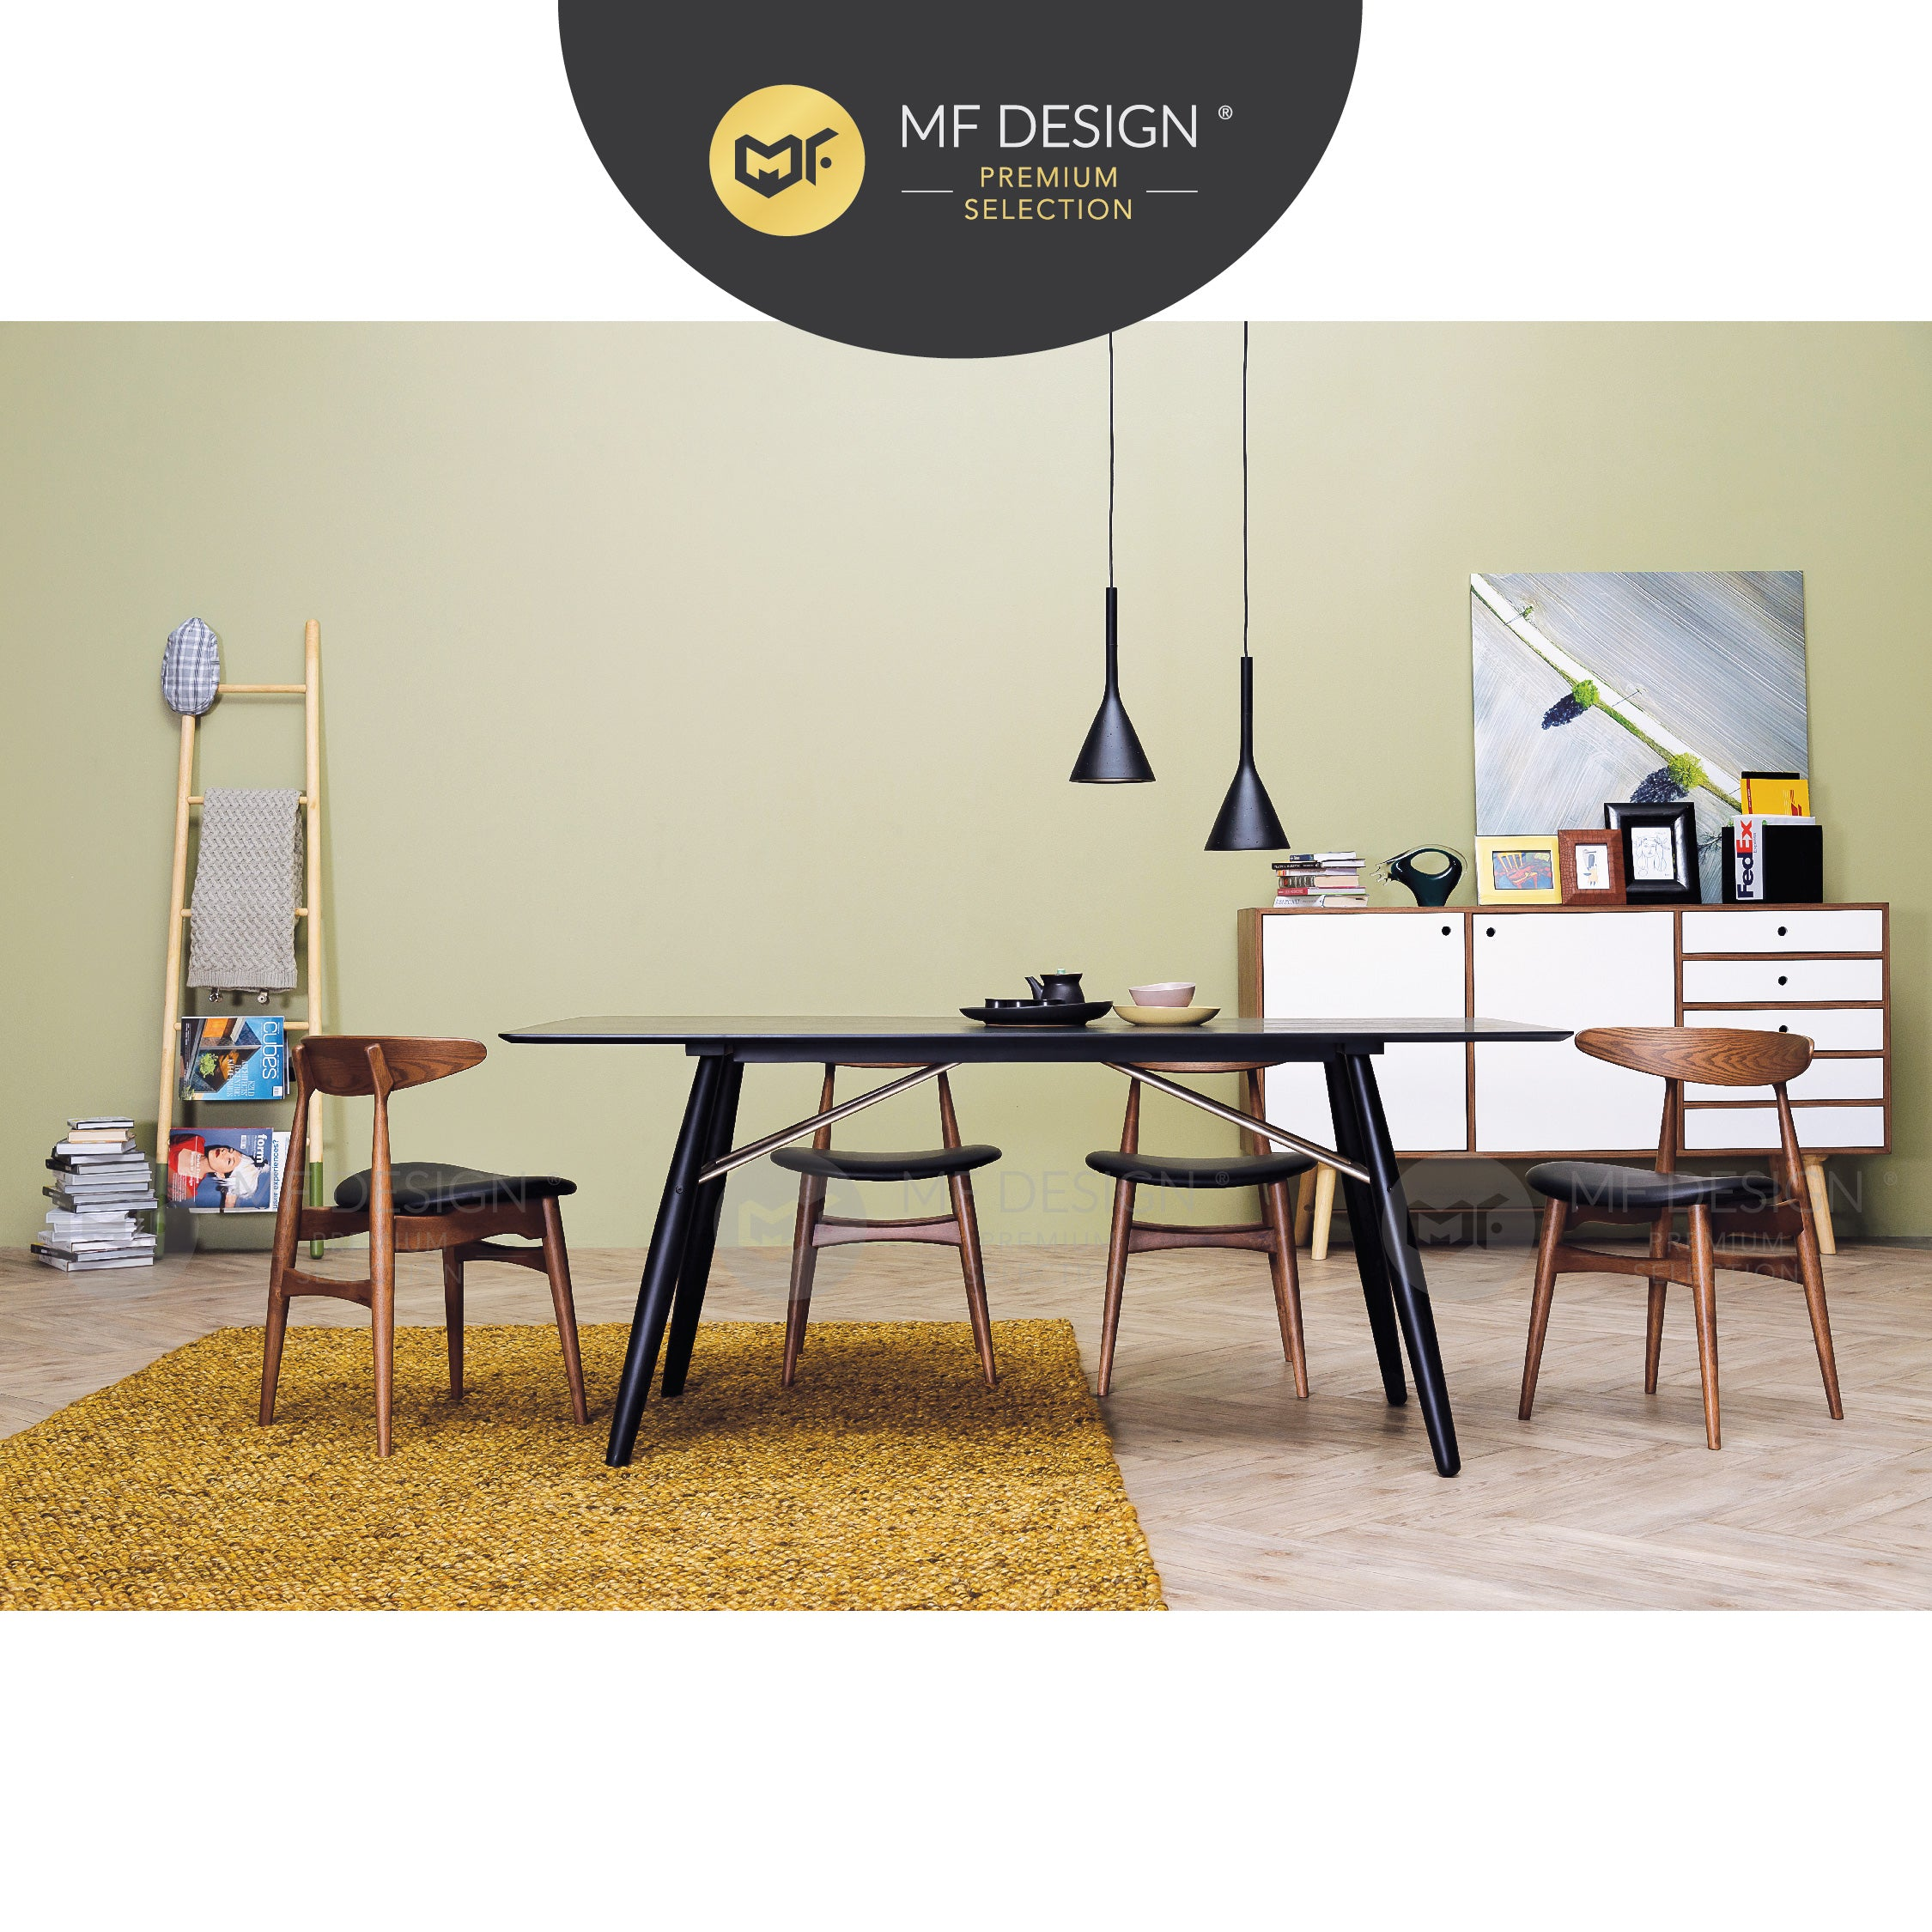 MFD Premium Tracy Dining Chair / Wooden Chair / Solid Rubber Wood / Kerusi Makan Kayu Getah / Living Room / Scandinavian